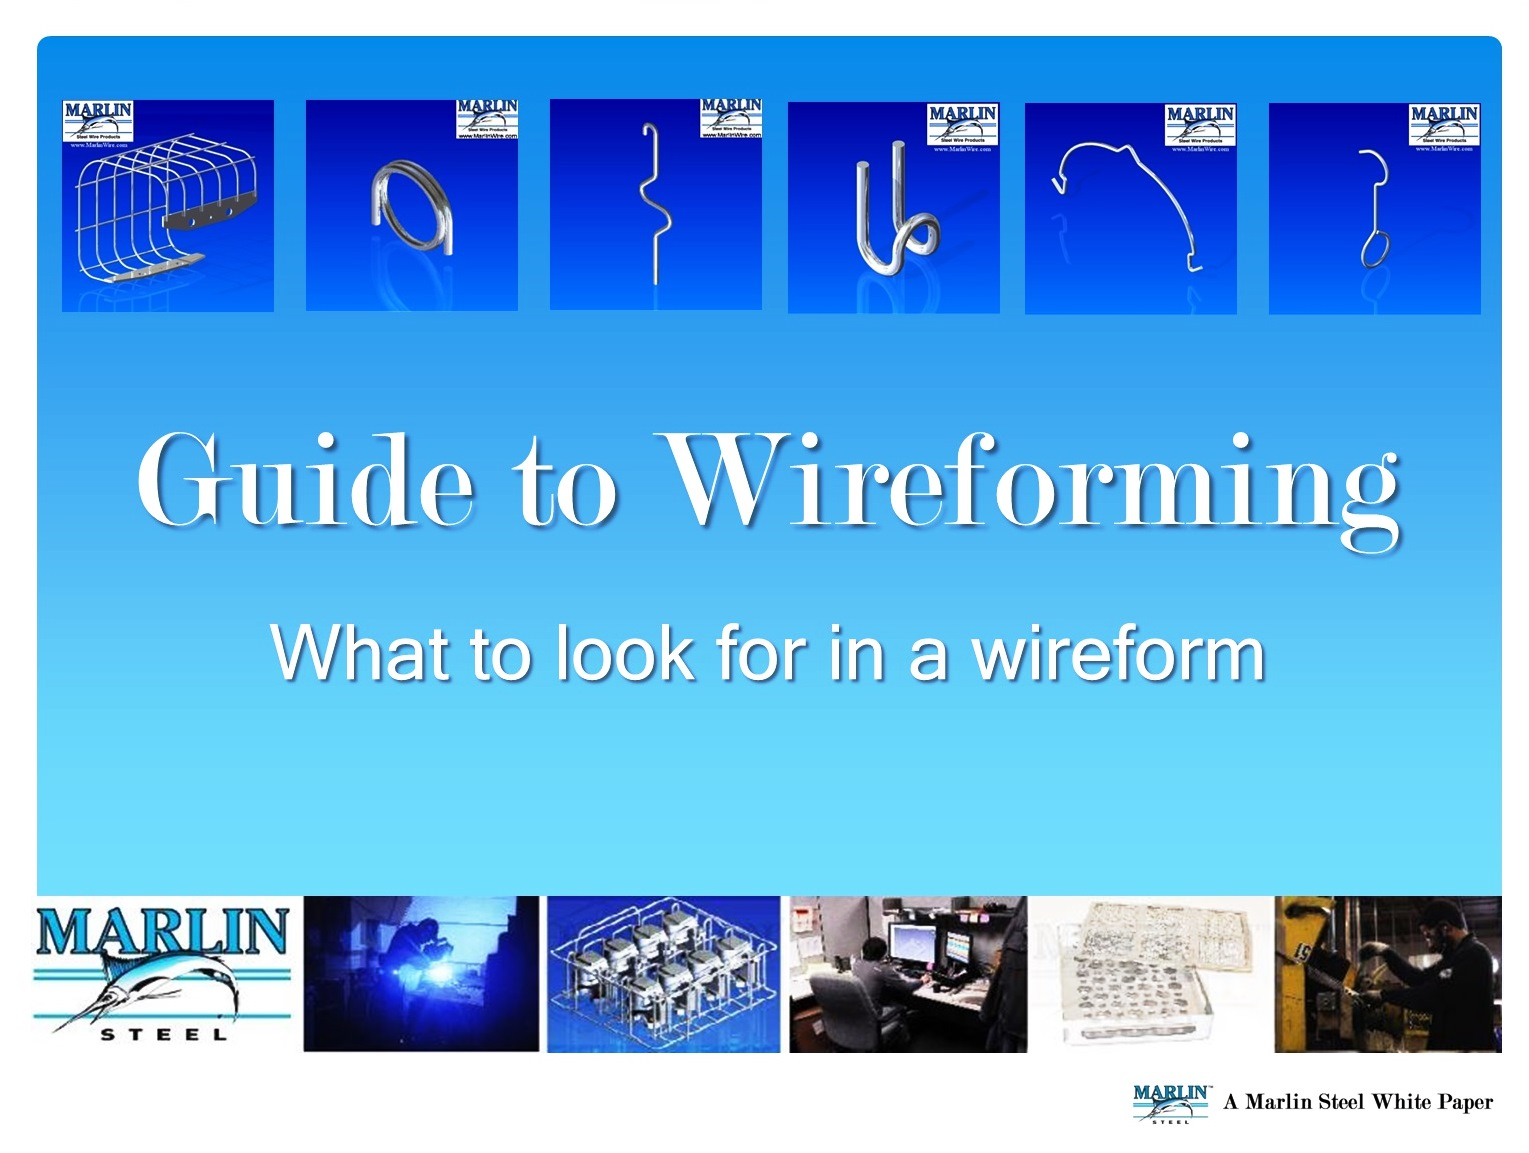 Guide to Wireforming